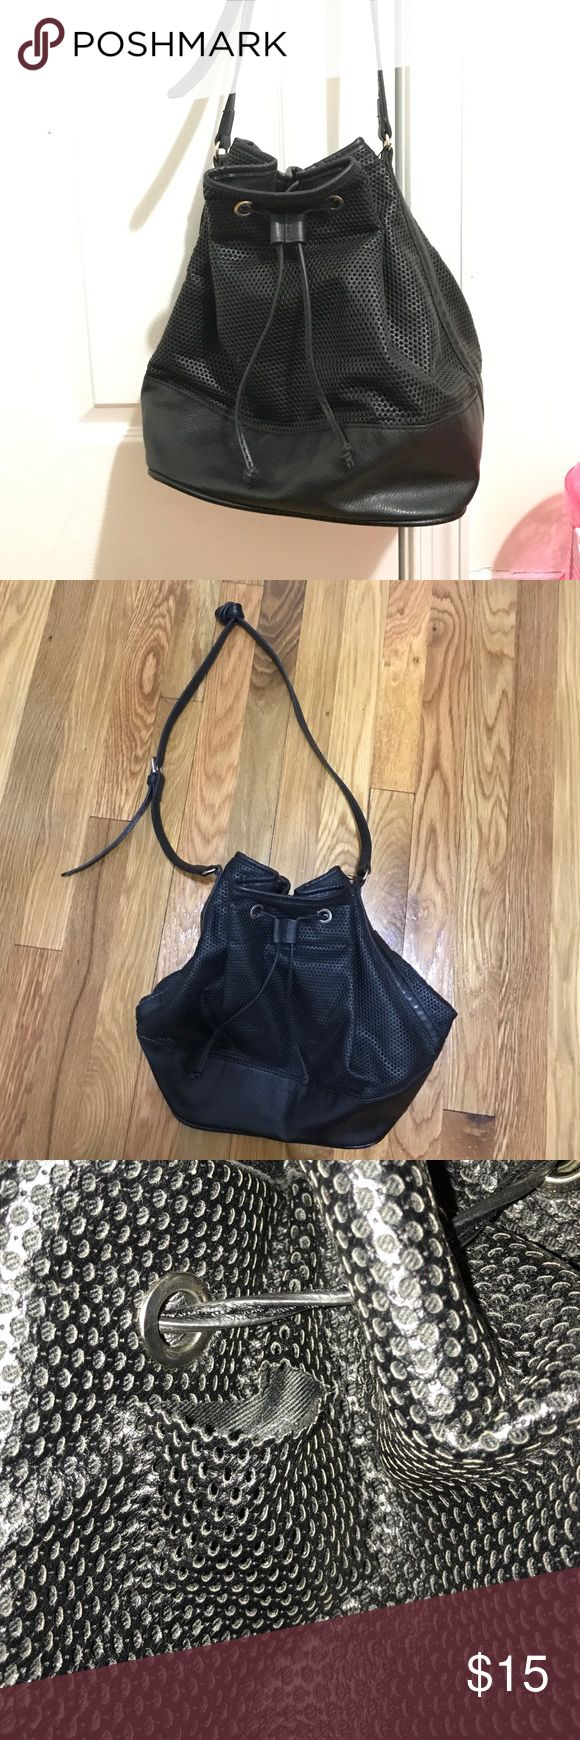 Mango black drawstring bag Used Mango bag. There's a small 1.5-2 inch rip on the back (pictured above). Trying to sell ASAP! Mango Bags Hobos